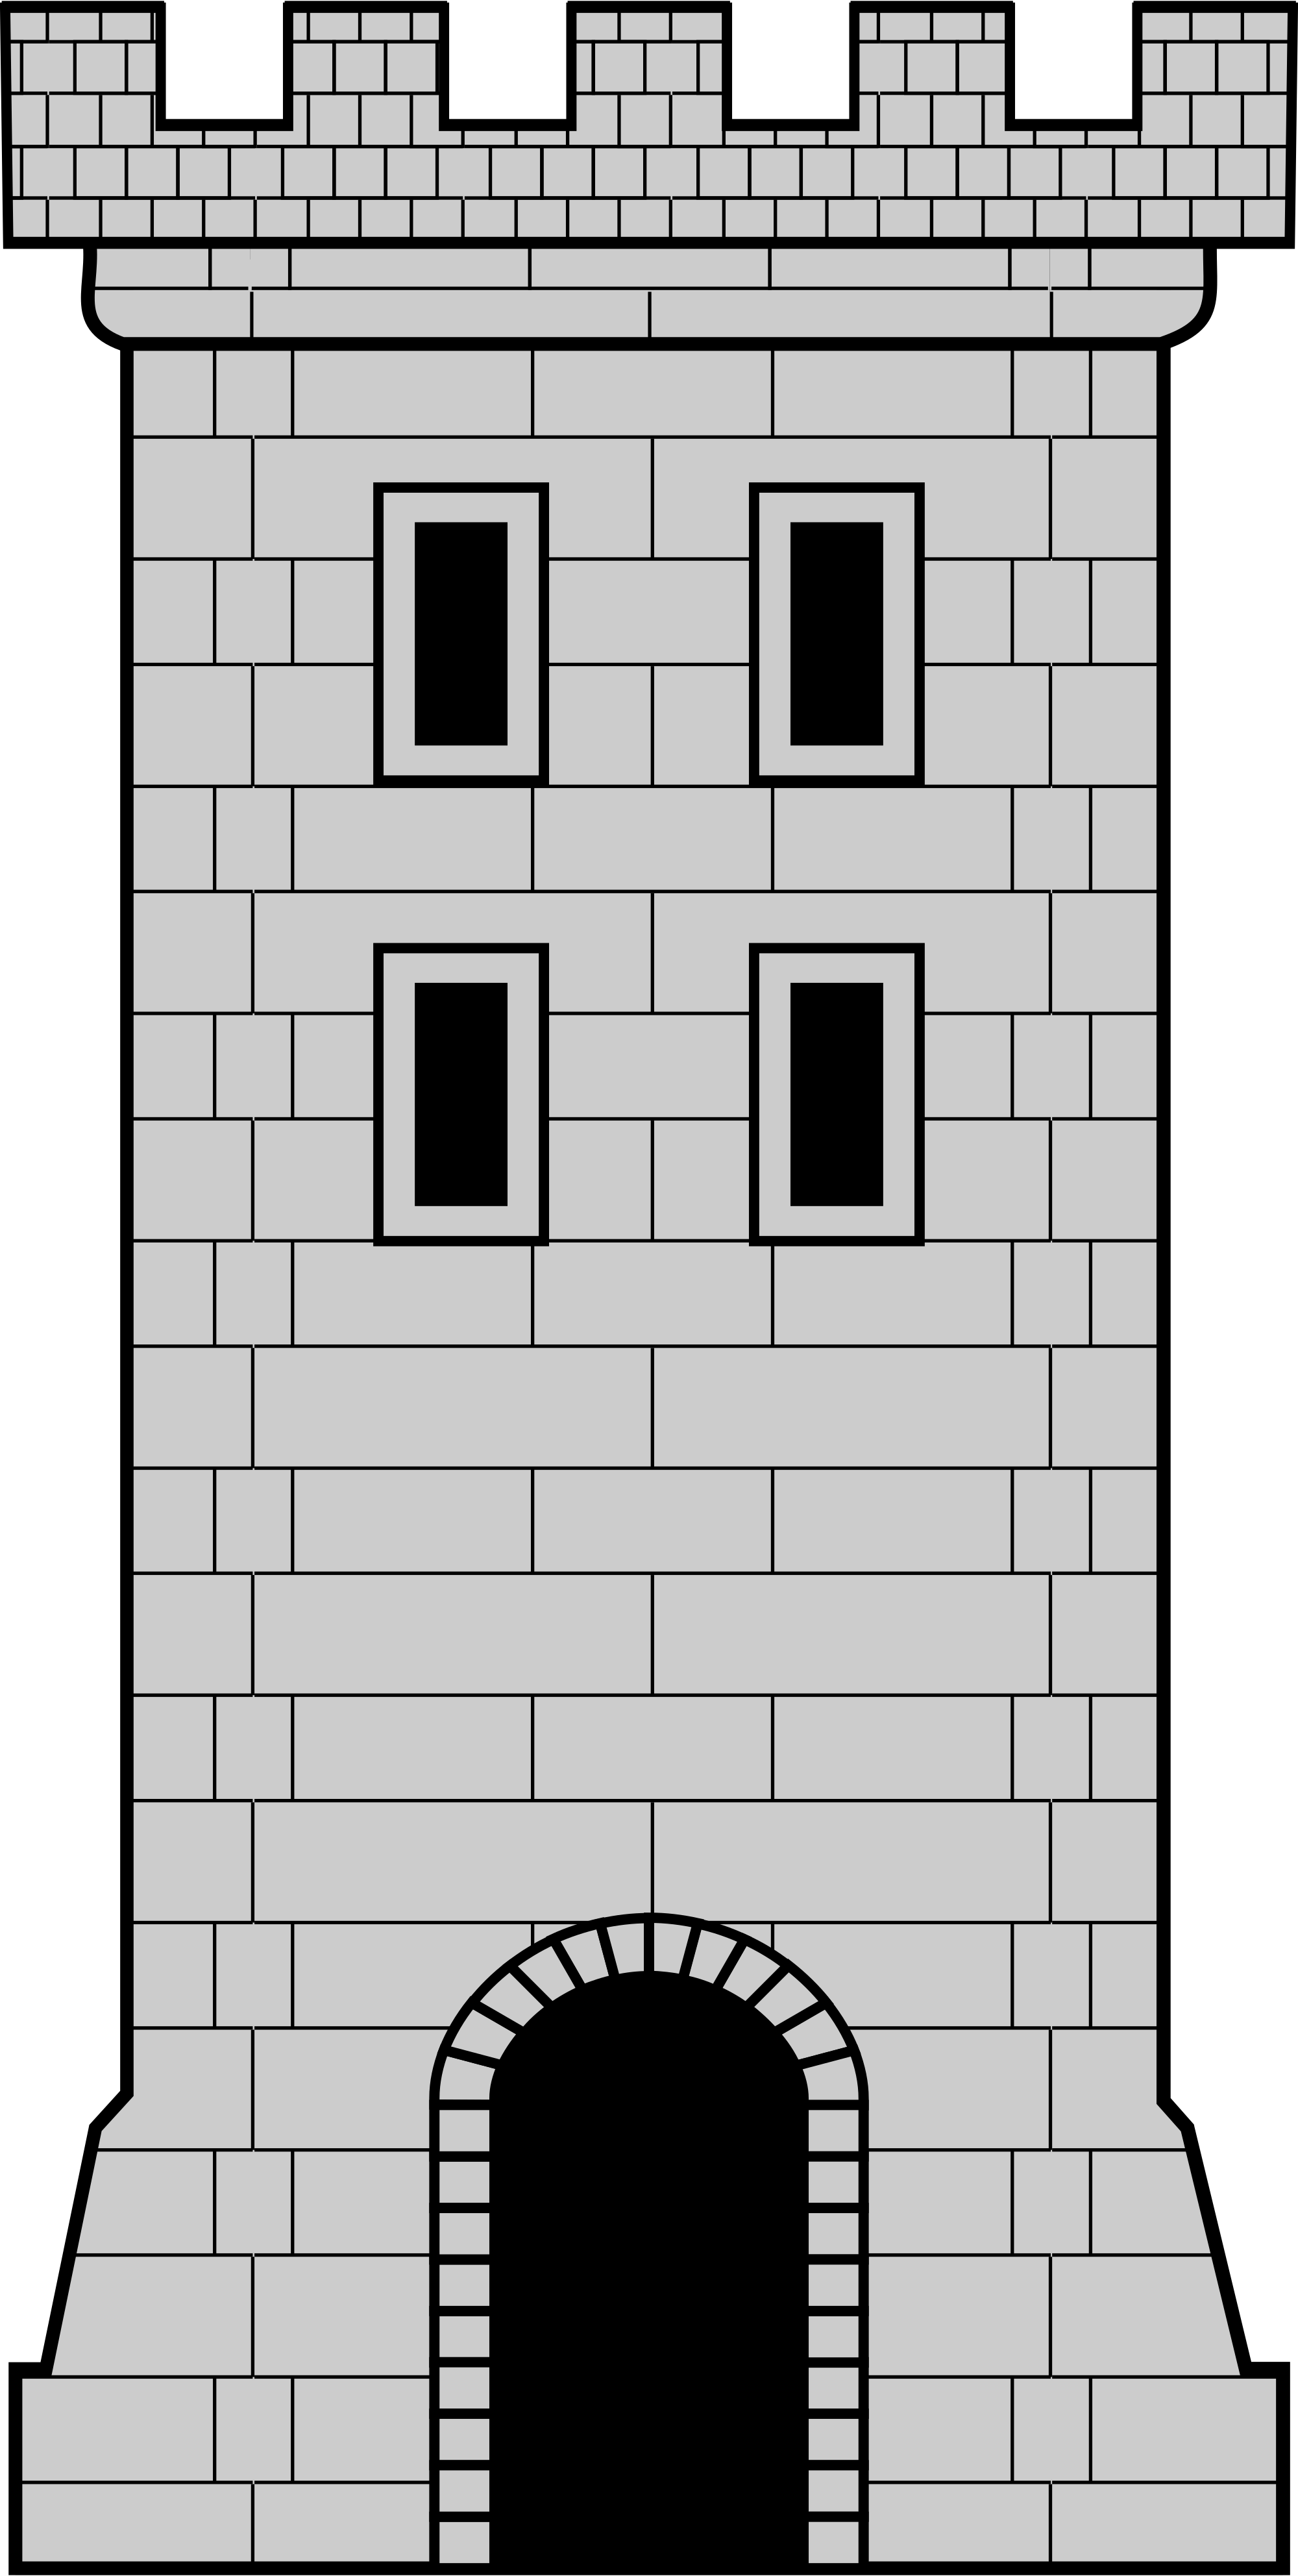 Castle svg wikimedia commons. Tower clipart file